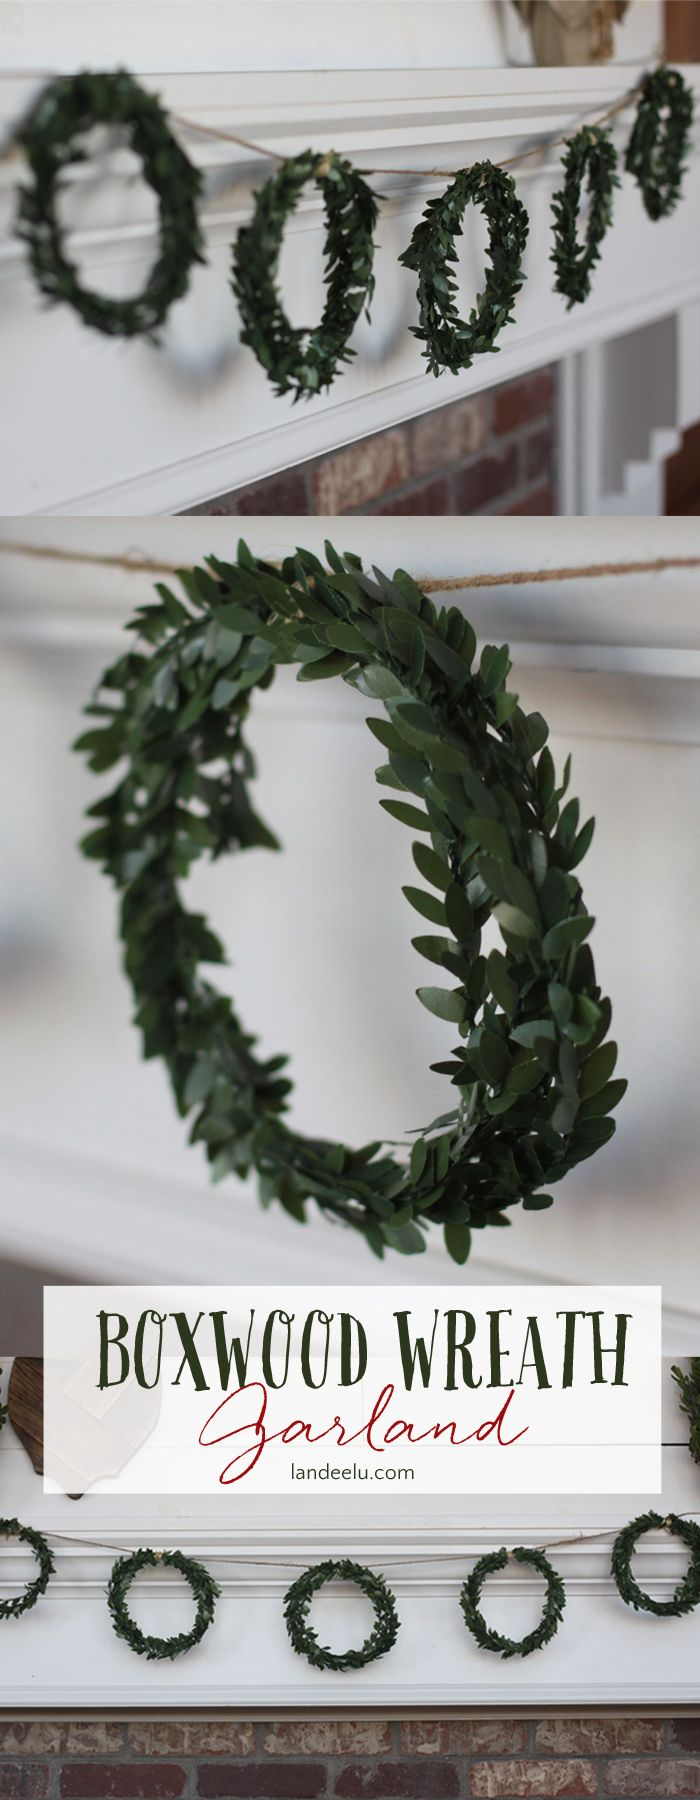 Christmas craft up this darling five boxwood wreath DIY garland in about twenty minute and for only a few dollars! A pretty addition to any Christmas decor!